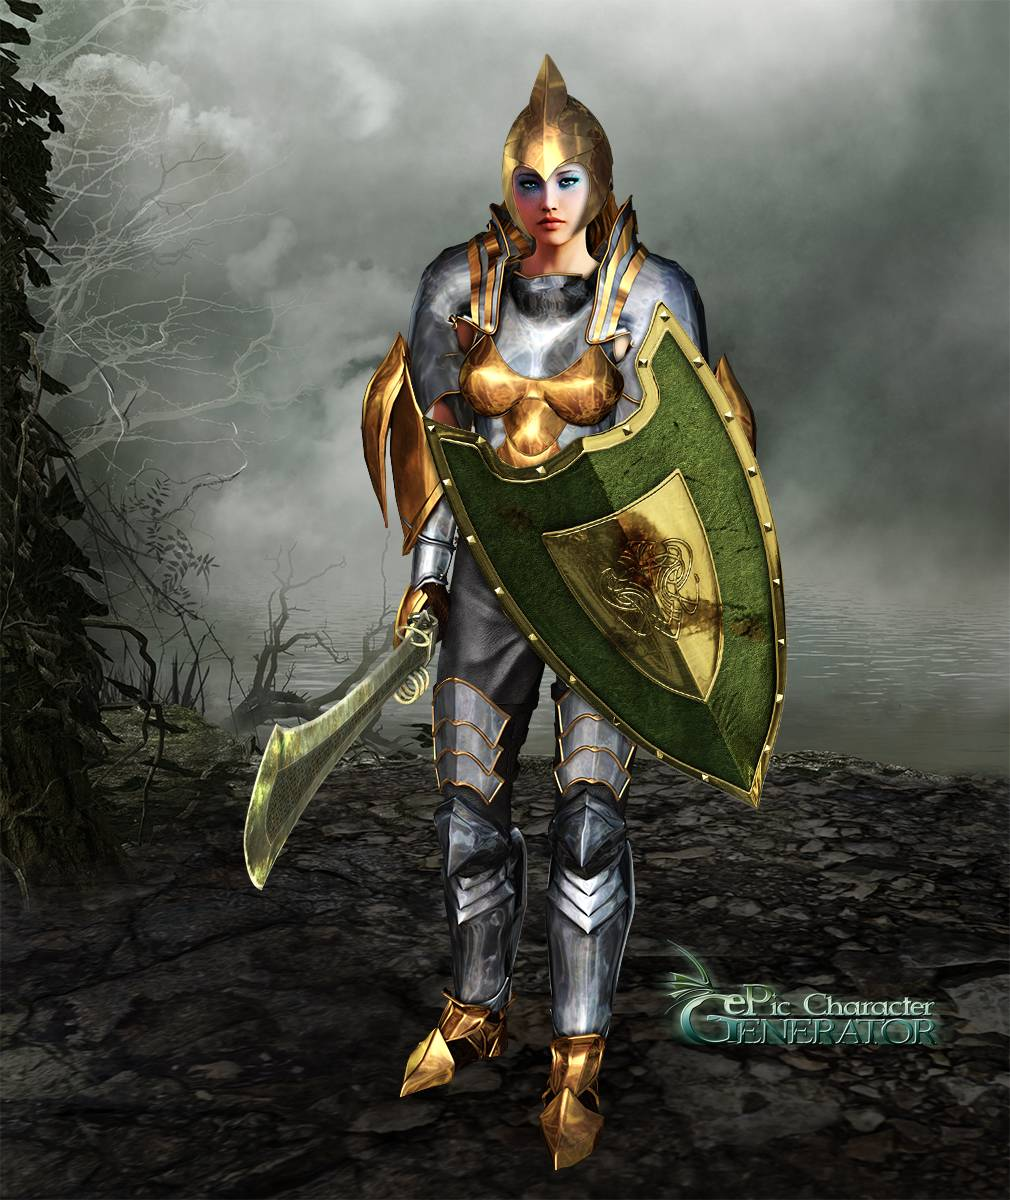 ePic Character Generator Season 2 Female Warrior Screenshot 14